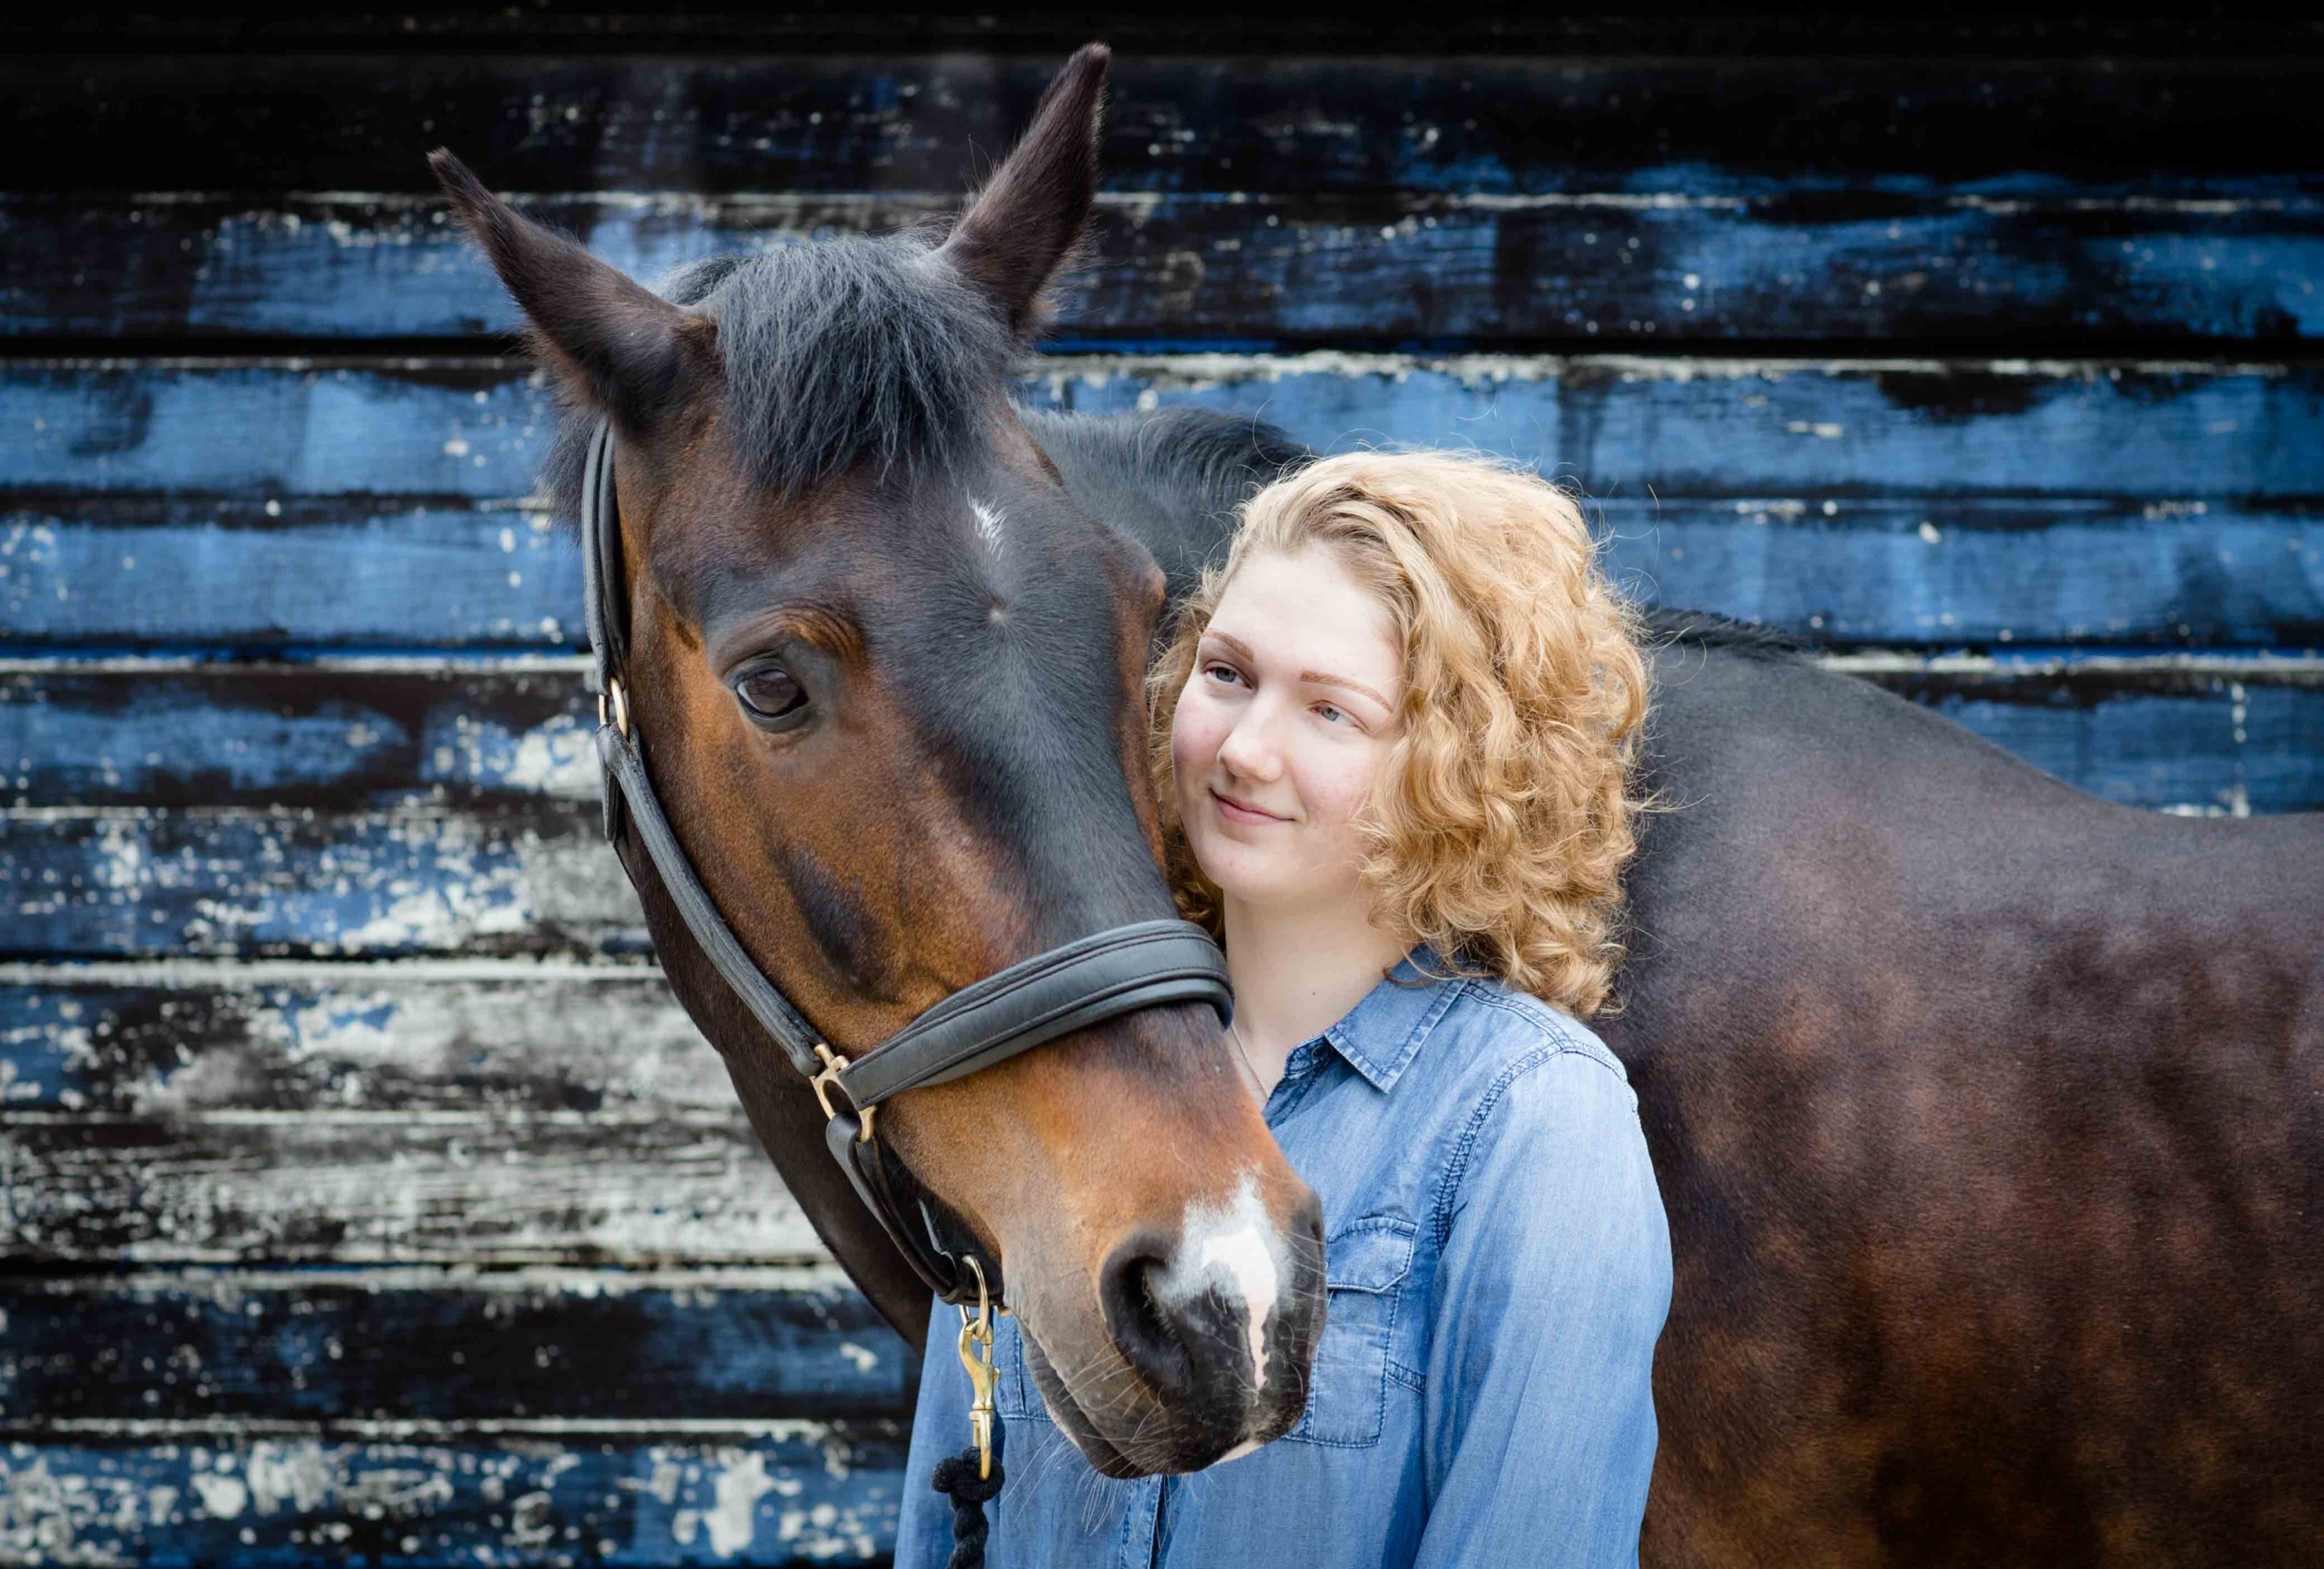 Horse Photography, Young women smiling and leaning on head of her horse set against blue board background